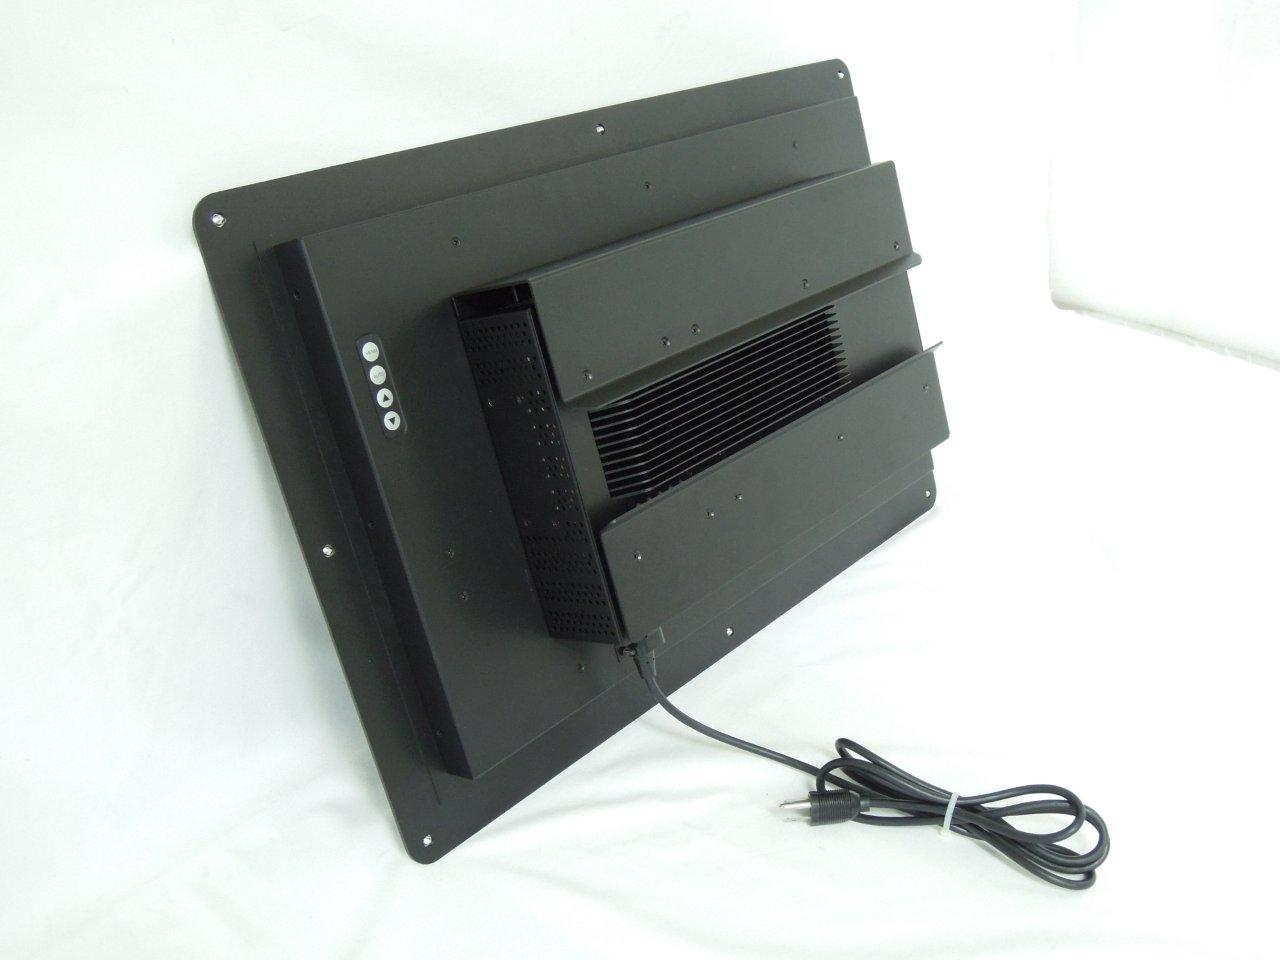 Panel Mount Computer with no moving parts